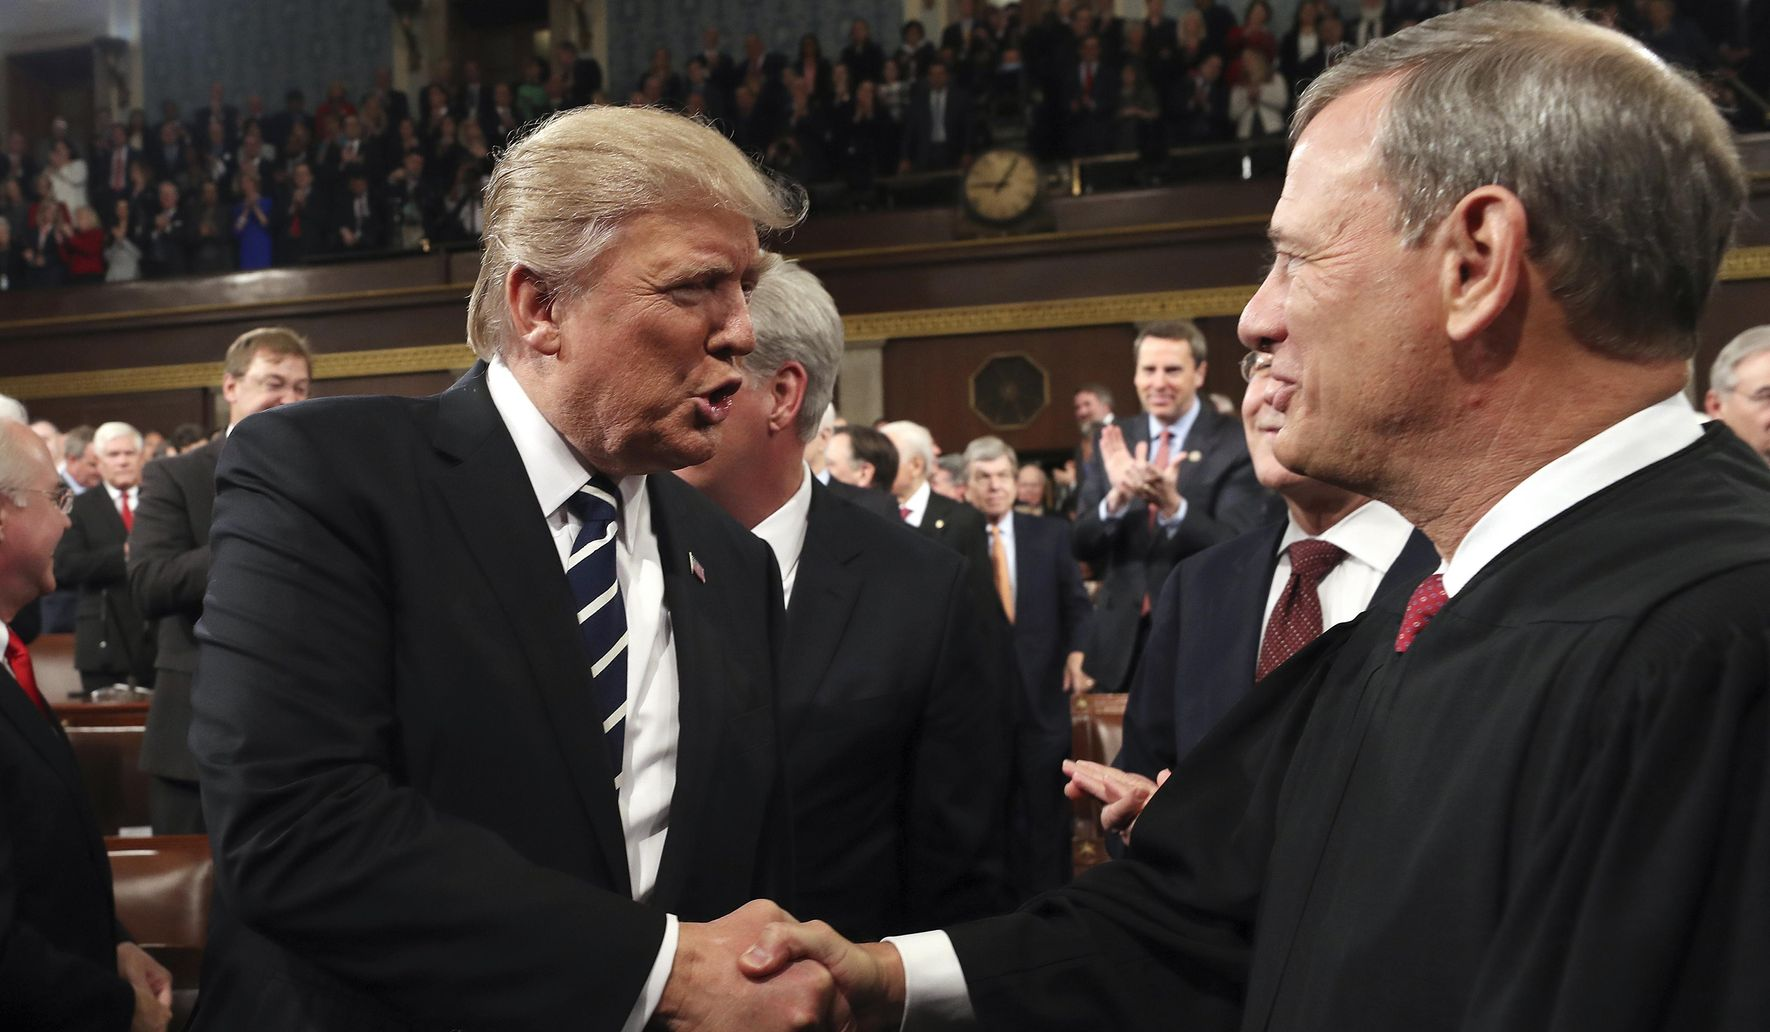 'Crisis of confidence': John Roberts' impeachment role prompts recusal rumblings